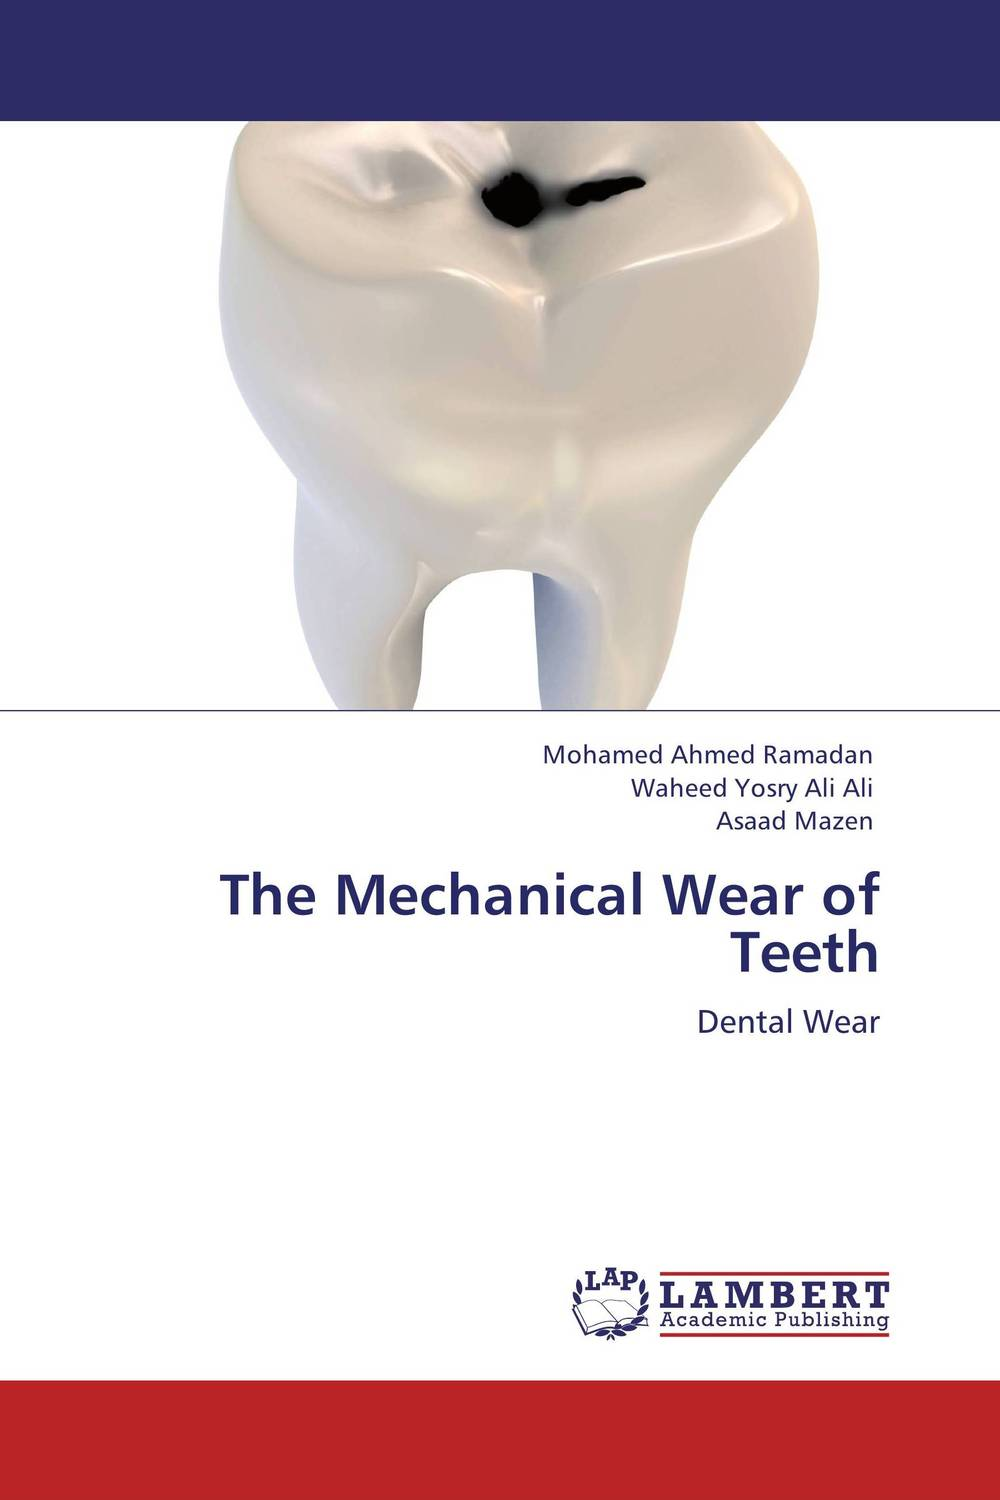 The Mechanical Wear of Teeth the teeth with root canal students to practice root canal preparation and filling actually